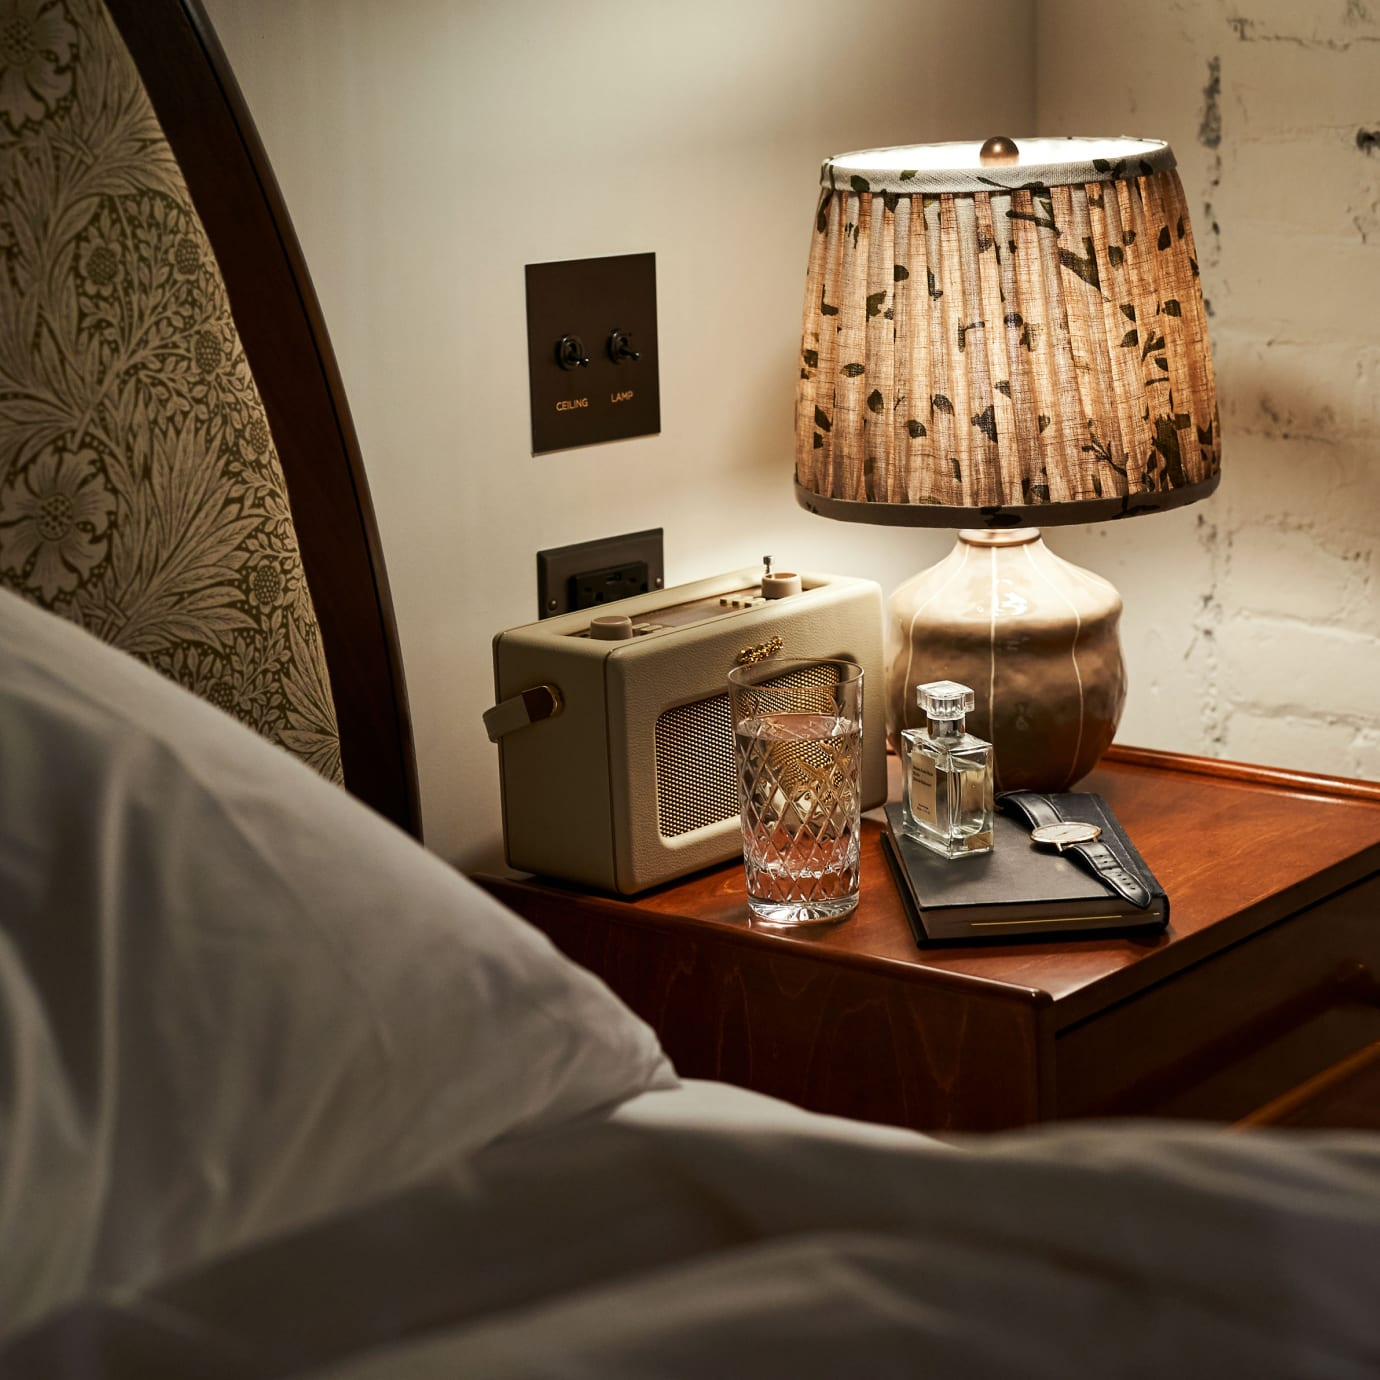 A bed and bedside table at night.